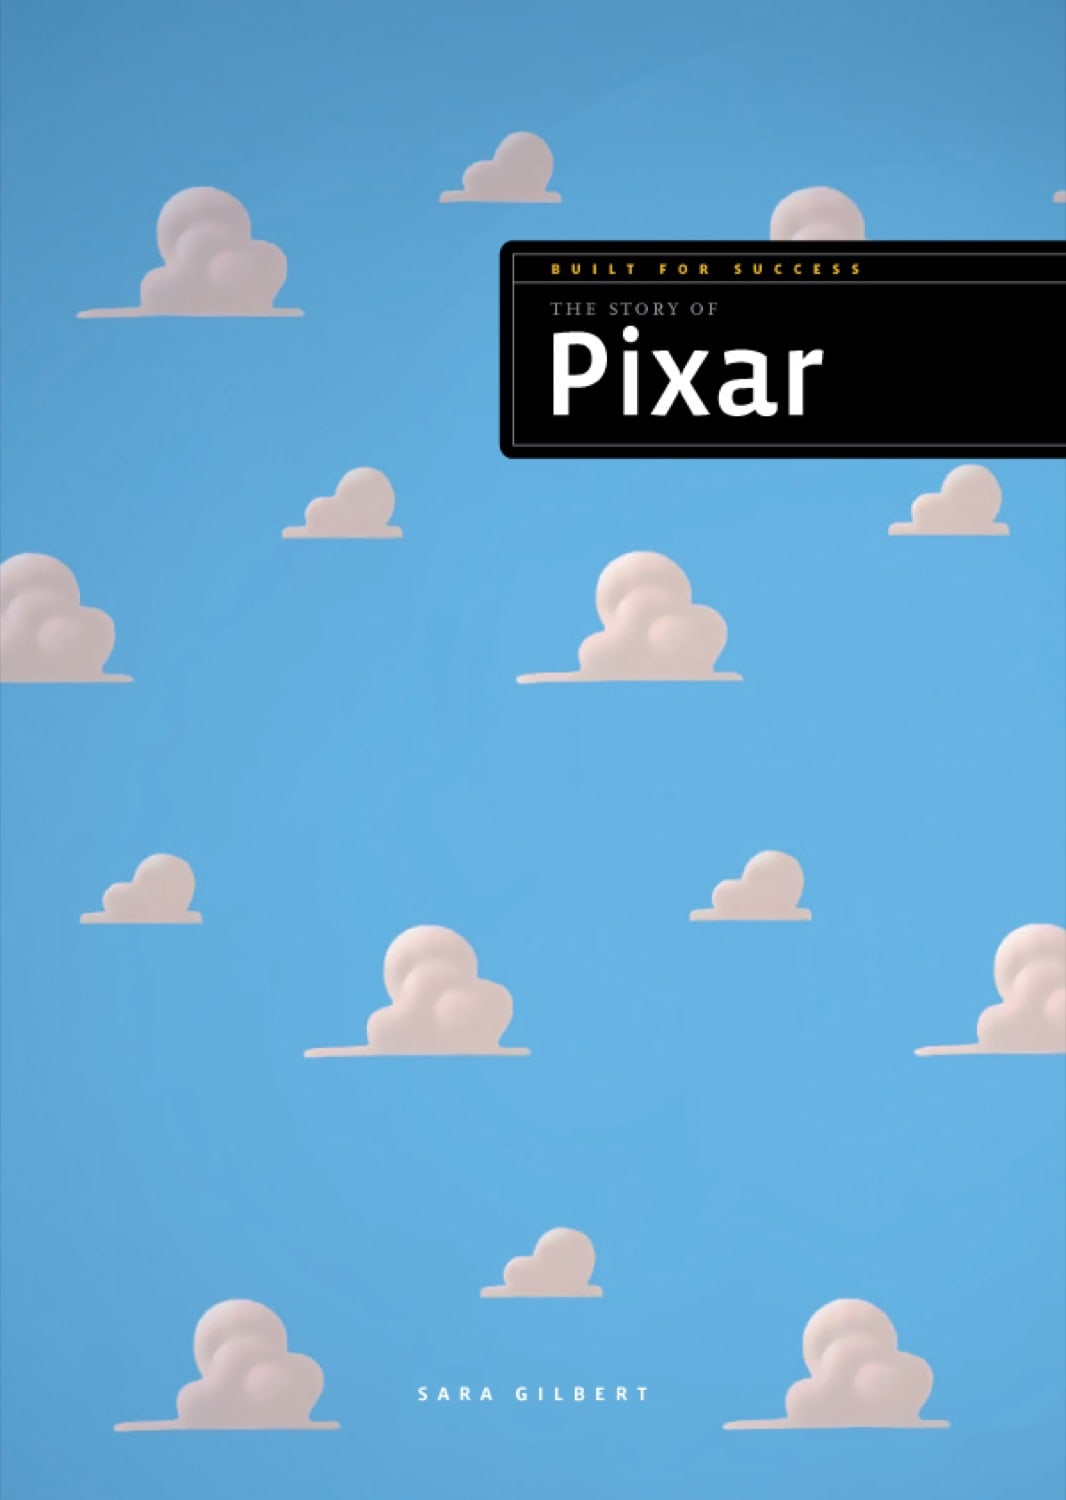 Built for Success: The Story of Pixar